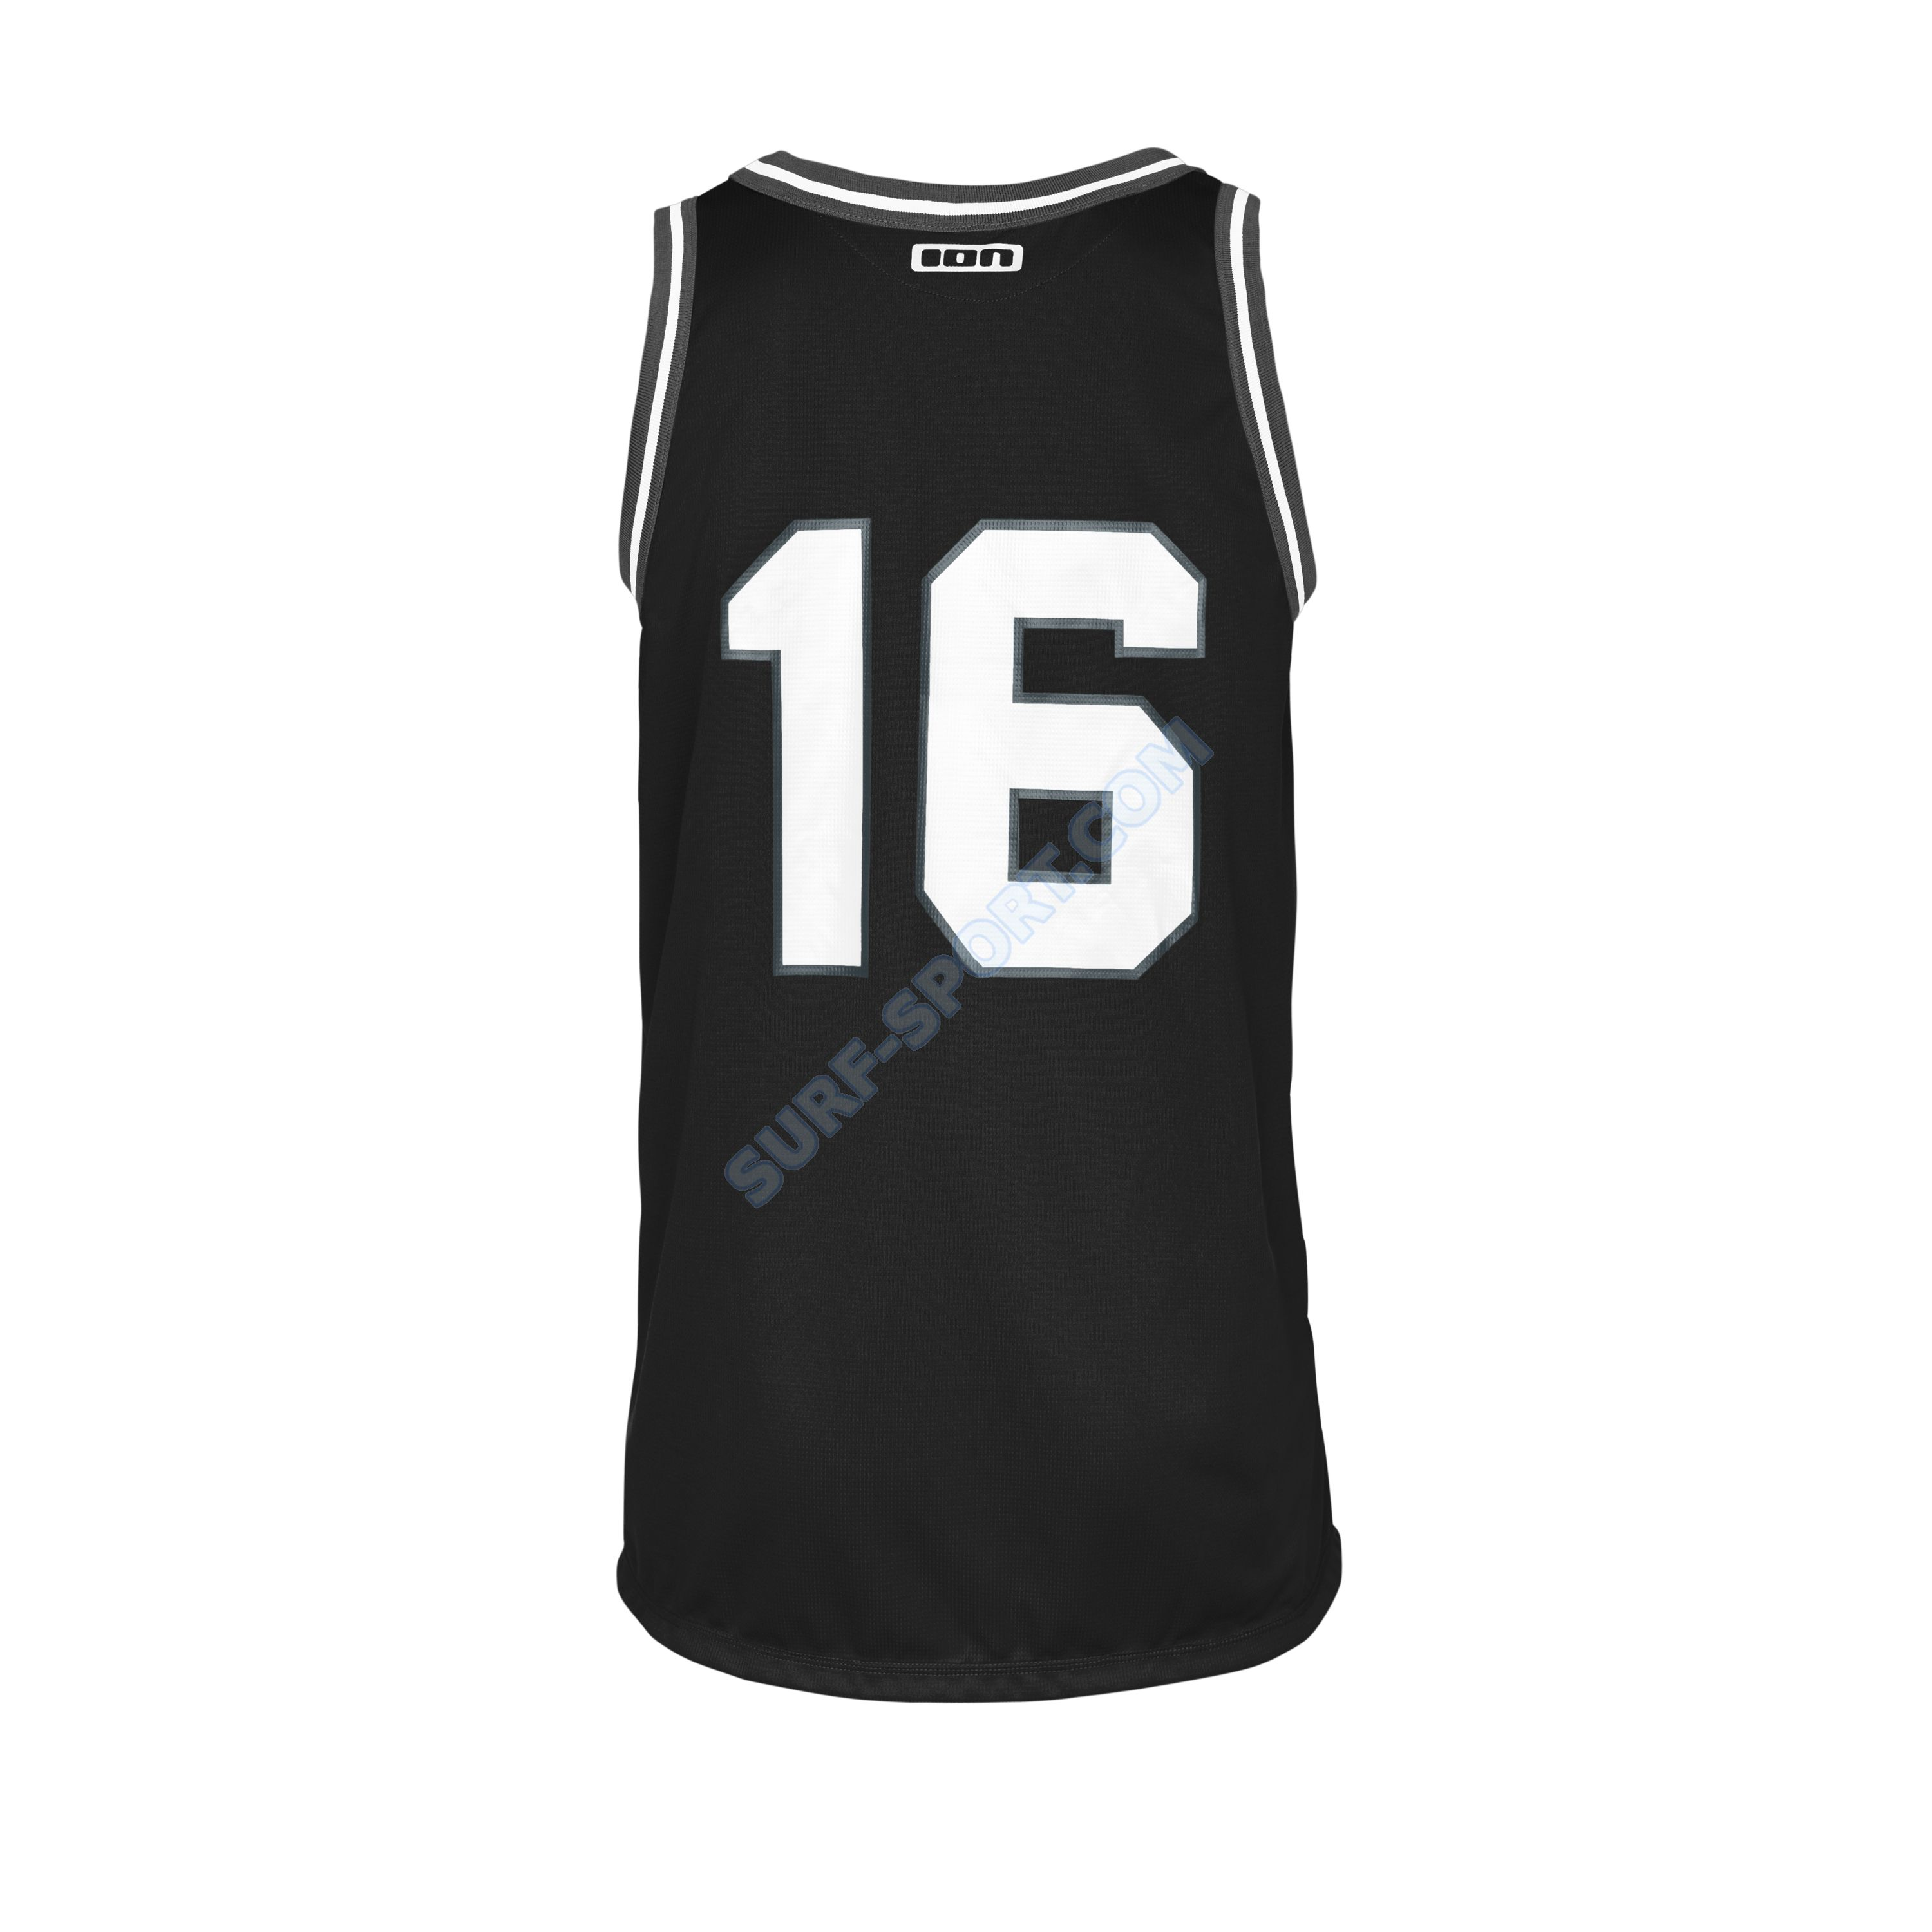 46502-5054_ION Basketball Shirt 16_black_b.jpg